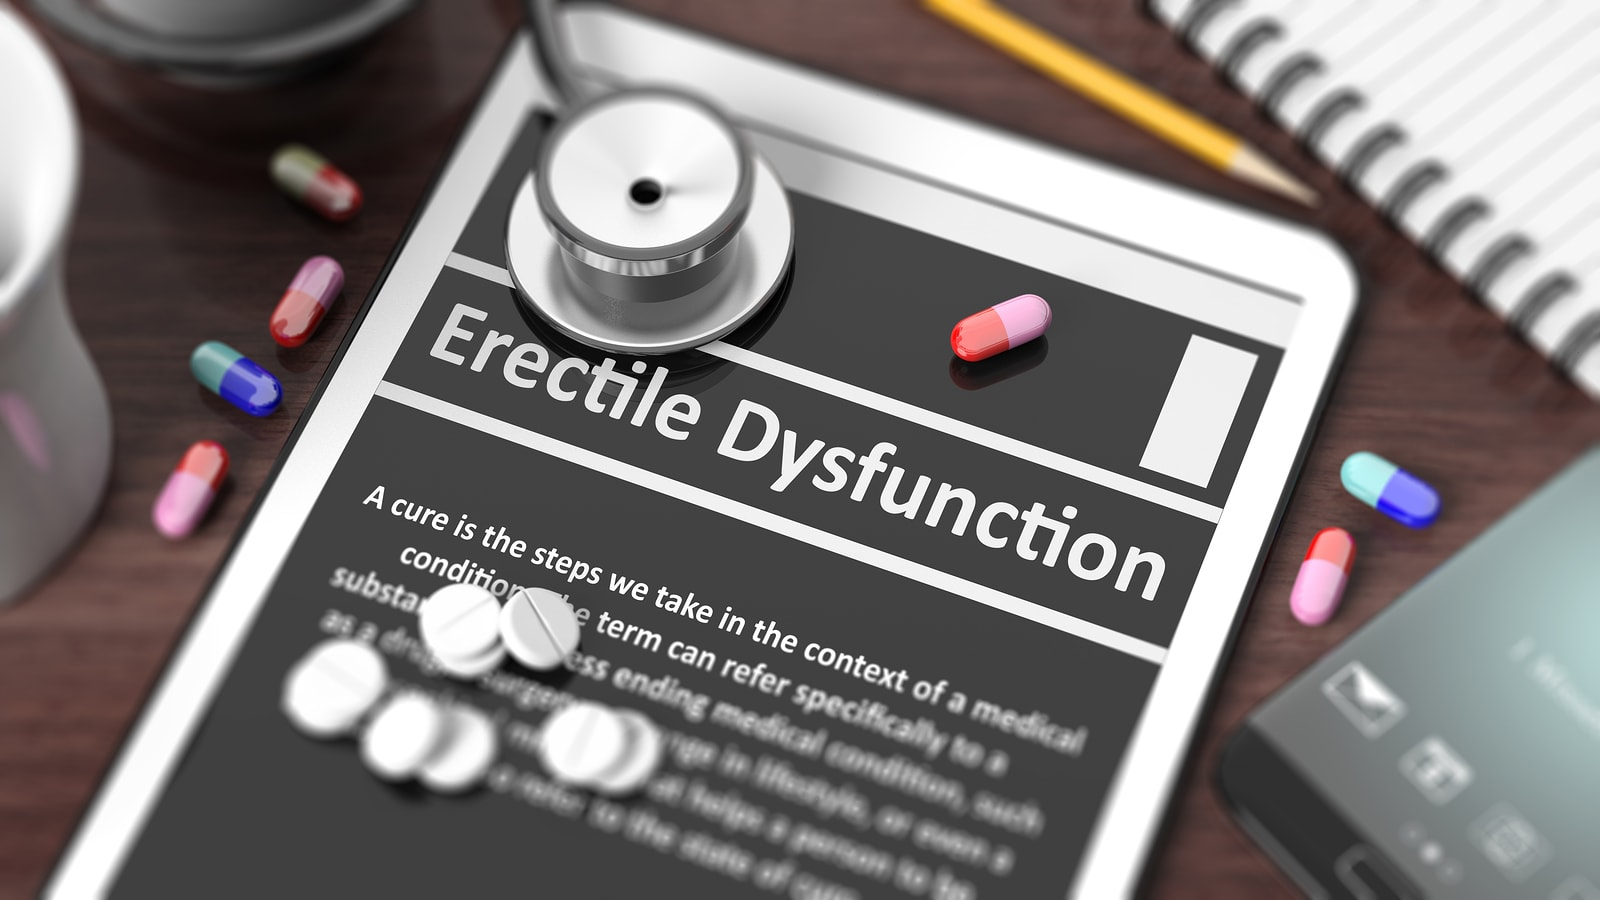 "How widespread is erectile dysfunction? It is very difficult to estimate the proportion of male population throughout the world that suffers from erectile dysfunction, either occasionally or chronically. Most of the researches on the matter of erectile dysfunction were done only in recent years and were done either in the United States or Europe, but the problem of erectile dysfunction is worldwide. People have to be willing to talk whether they have the problem of erectile dysfunction. Because of the stigma associated with this issue, people may not want to open up about it. The following statistics may not be accurate, but rather gives us a frame of reference: Men under the age of 40. Erectile dysfunction (view disease info)affects 40 to 50 percent of men under age 40, at least once in their lives. Typically it is not chronic, partly because of the physical health of people under 40. It is estimated only 2 to 5 percent of men in this group have erectile dysfunction chronically. Men over the age of 40. In this group about 70 percent of men have experienced erectile dysfunction at least once in their lives. Around 15 to 20 percent of men in this group have this problem chronically. Primary erectile dysfunction and secondary erectile dysfunction Before getting to the list of the most common emotional factors, we need to consider two phases of erectile dysfunction. Primary Erectile dysfunction can be caused by a variety of factors: medication, physical issues, or psychological issues. Secondary causes of erectile dysfunction are psychological. These result in anxiety. Anxiety can be independent of what was the primary reason of erectile dysfunction. Anxiety when applied to erectile dysfunction means anticipation that once erectile dysfunction episode happened, it is going to repeat. Anxiety like this is typical for any other activity as well, as it produces exactly the result a man fears. 9 common psychological causes of erectile dysfunction include: General stress level A man can experience general psychological stress at any point of his life. He can worry about his job, his relationships, economy, or politics; really just about anything. When worrying, it is really hard for a man to distract and concentrate on a pleasurable activity. This state can make difficult to get an erection. Stress in relationships Couples go through different phases in their relationships. Sometimes there are conflicts. Sexual activity doesn't go well with stressful relationships. Anger can cause decline in sexual potency because a man doesn't feel his partner properly, and, as a result, cannot obtain or sustain an erection. Depression By depression we mean a psychological state that involves hopelessness. We can refer to it as anhedonia, a general lack of interest in pleasure. A man in the state of depression doesn't enjoy pleasures he used to enjoy once. Of course it can cause an erectile dysfunction. Low self-esteem It is not really clear where the one's esteem comes from. Some people are successful, yet they feel as a failure. If a man has really low self-worth, he carries the mindset that his partner wouldn't want to have sex with him, or will be pretending to enjoy it. If you feel this way, it can affect your ability to have a firm erection that you can sustain. Poor body image Sometimes a man looks in the mirror and doesn't like what he sees: his body, his features, or excessive weight. Very often a man thinks his penis is too small. Even when a man knows that his partner loves him, poor body image can cause thinking that his partner wouldn't want to have a sex with his body, which, in its turn, affects confidence and the ability to be aroused. Insomnia Lots of men experience sleep deprivation. If a man suffers from insomnia for a certain period of time, he has lower levels of energy. When exhausted, a man has lower potency which can result in problems with erection. When a man loses an attraction in his partner Sometimes a man can lose attraction in his partner. If for any reason a man doesn't care about his partner for a variety of reasons, be it a physical appearance, or the way she is dressing, he can lose the ability to perform sexually with this particular partner. Fear of causing pain A man can fear that he will cause pain. Sexual intercourse involves lubrication in women as well as an erection in men. If, for different reasons, a female partner loses the ability to lubricate, a sexual activity can be very painful for her, and a man, in his turn, also mirrors her emotional state and is constantly stressed that whatever he does sexually, is potentially painful to his partner. That can cause an emotional state incompatible with an erection. The ""first time"" factor For men having their first sexual experience, it can become a factor in achieving an erection as he is being overly anxious. ""Will I perform properly?""; ""Will my partner enjoy it?"" The more confident people are, the less likely the problem is going to repeat itself. What to do when you have an emotional cause of erectile dysfunction? The most important thing a man can do when he is anxious, is to forget his previous experiences and just live in the moment. If a man is approaching forthcoming sexual experience thinking, ""I am going to fail,"" he has a good chance that it is exactly what is going to happen to him. Another thing, a man can address each and every emotional episode that had caused an erectile dysfunction before, sometimes with a help of a medical specialist, in order to get rid of the past anxiety issues. Most men will have an erectile dysfunction issue at some point in their lives, and it is best to speak with a professional in the field, because men tend to overreact and think they are a complete failure, while an episode can be really mild. Very often, a medical specialist prescribes pills, such as Viagra or Cialis, which are used very widely and indeed is the most efficient way to deal with erectile dysfunction, sometimes combined with a bit of psychotherapy. Once the pattern of erection is established, it would become way easier for a man to achieve an erection when in presence of the particular emotional factor."